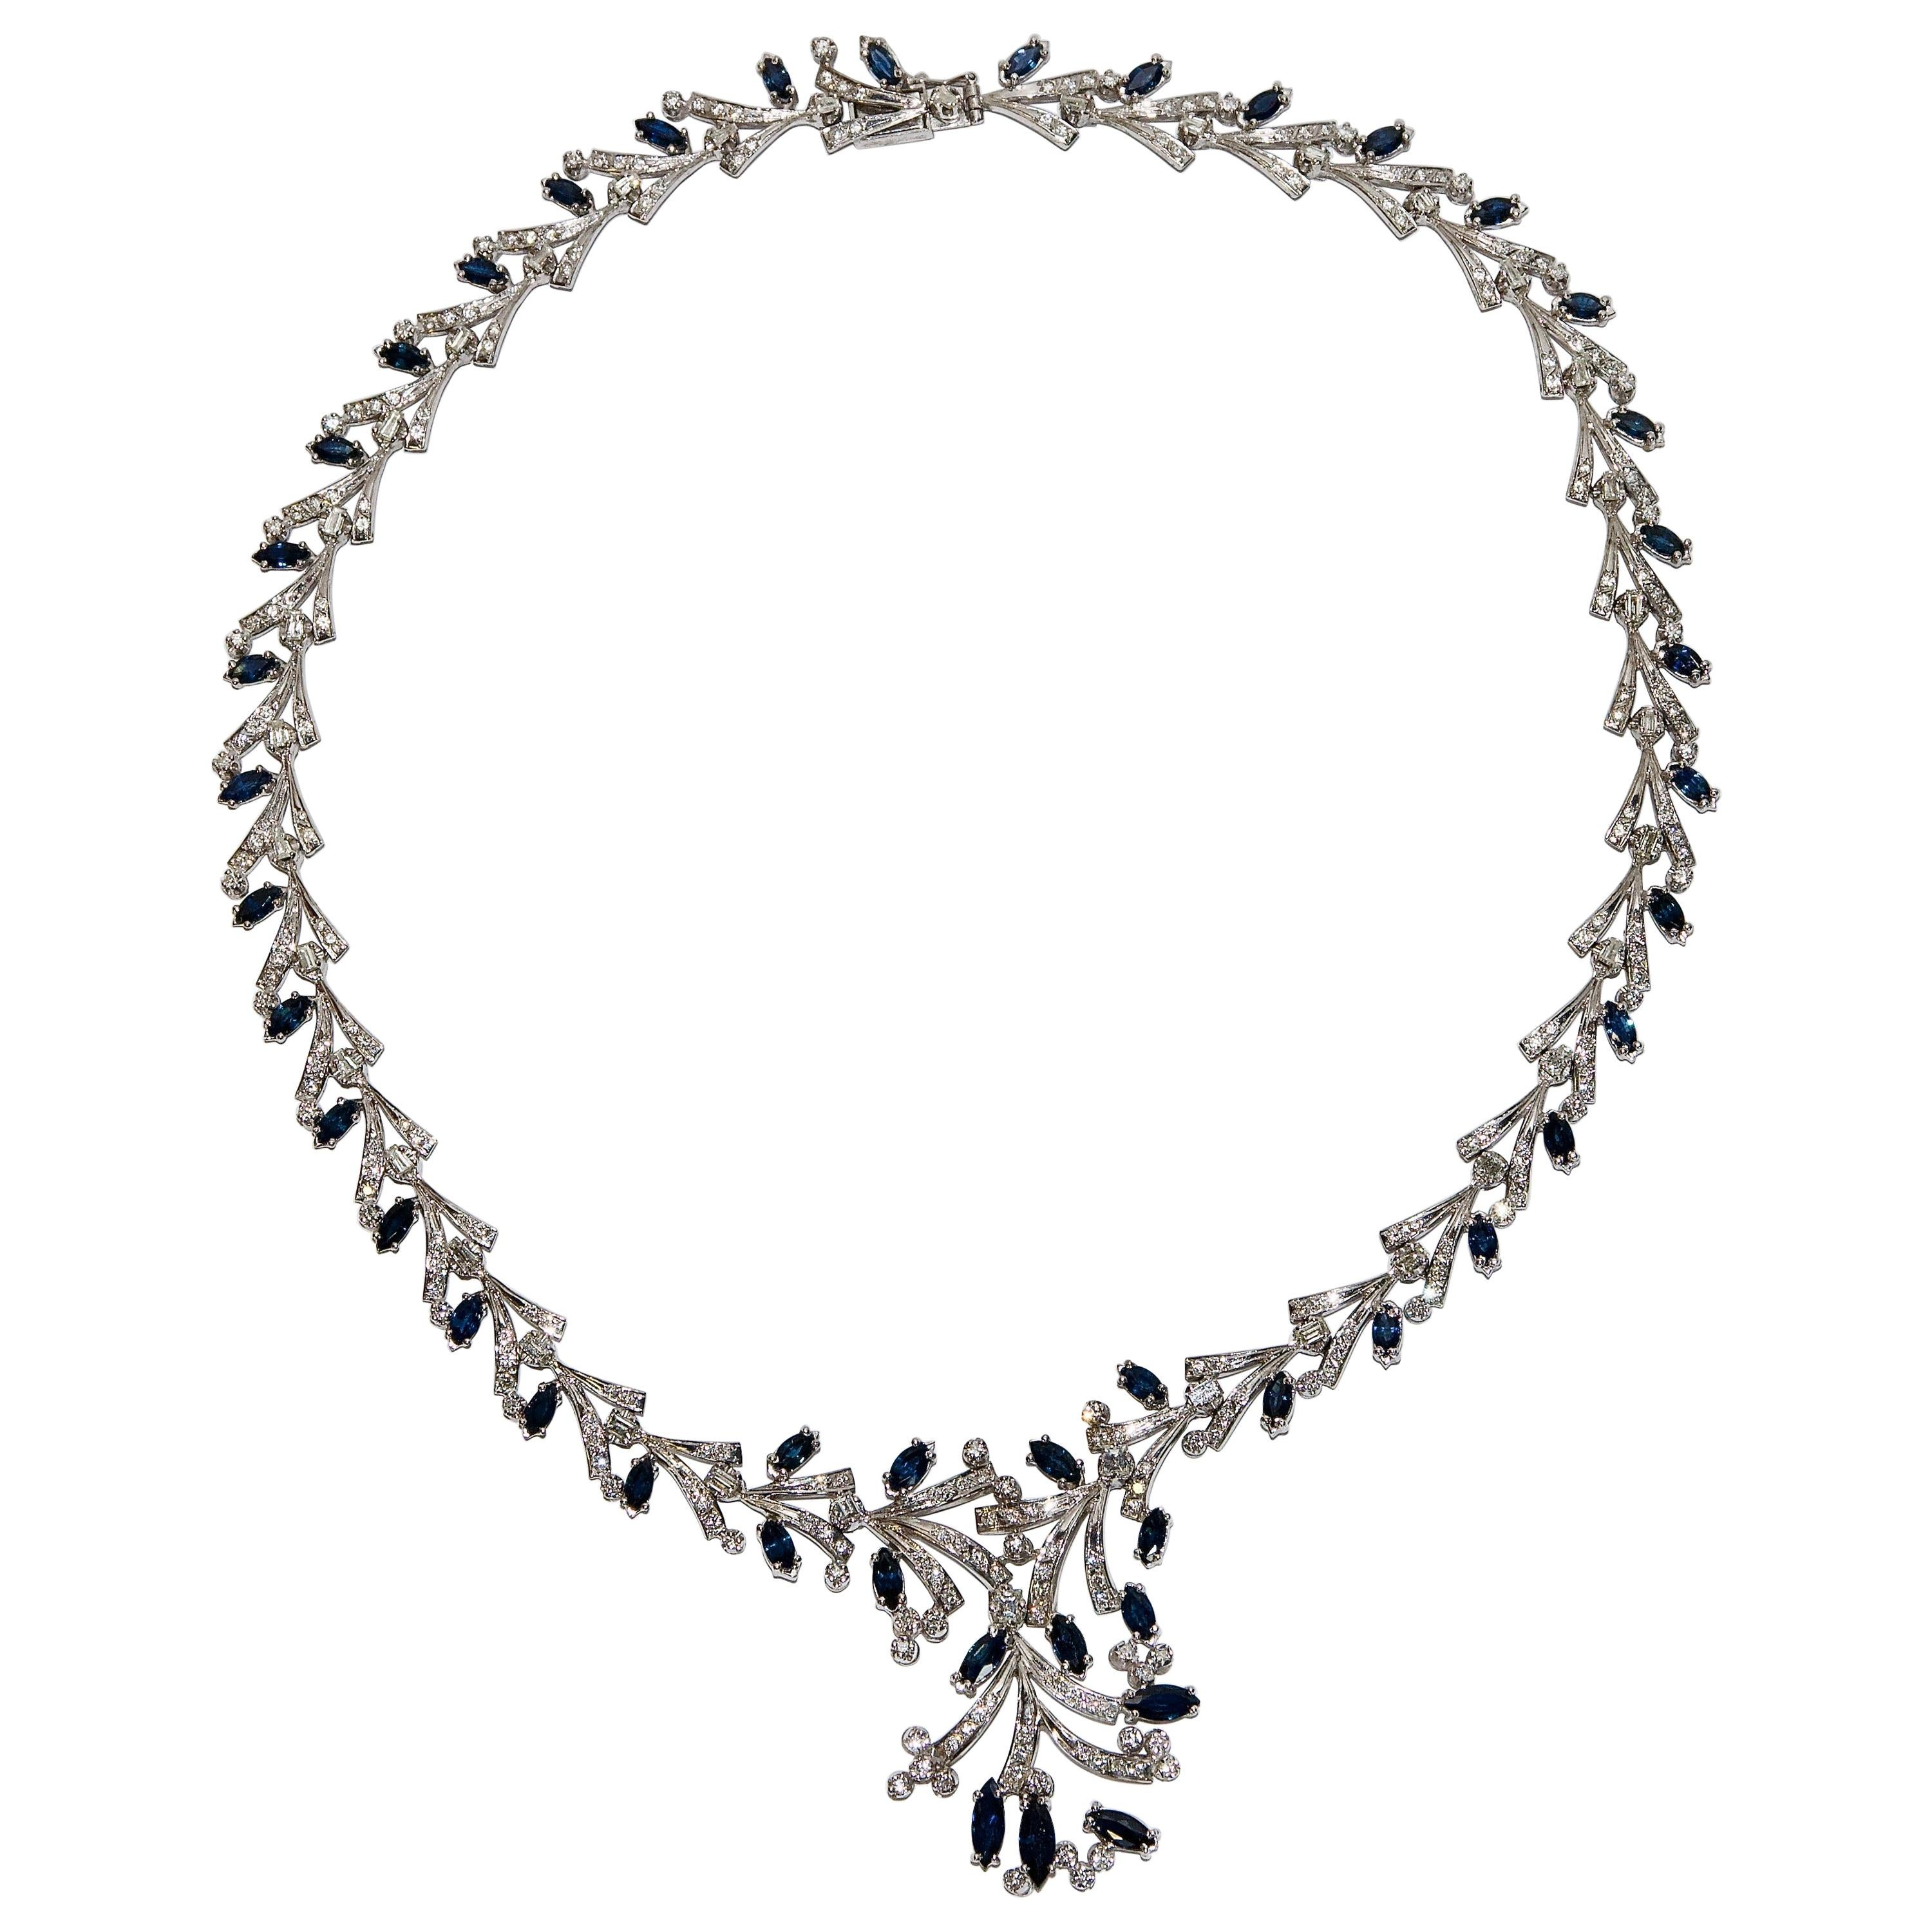 Certified Ladies Necklace in 14 Karat White Gold Set with Diamonds and Sapphires